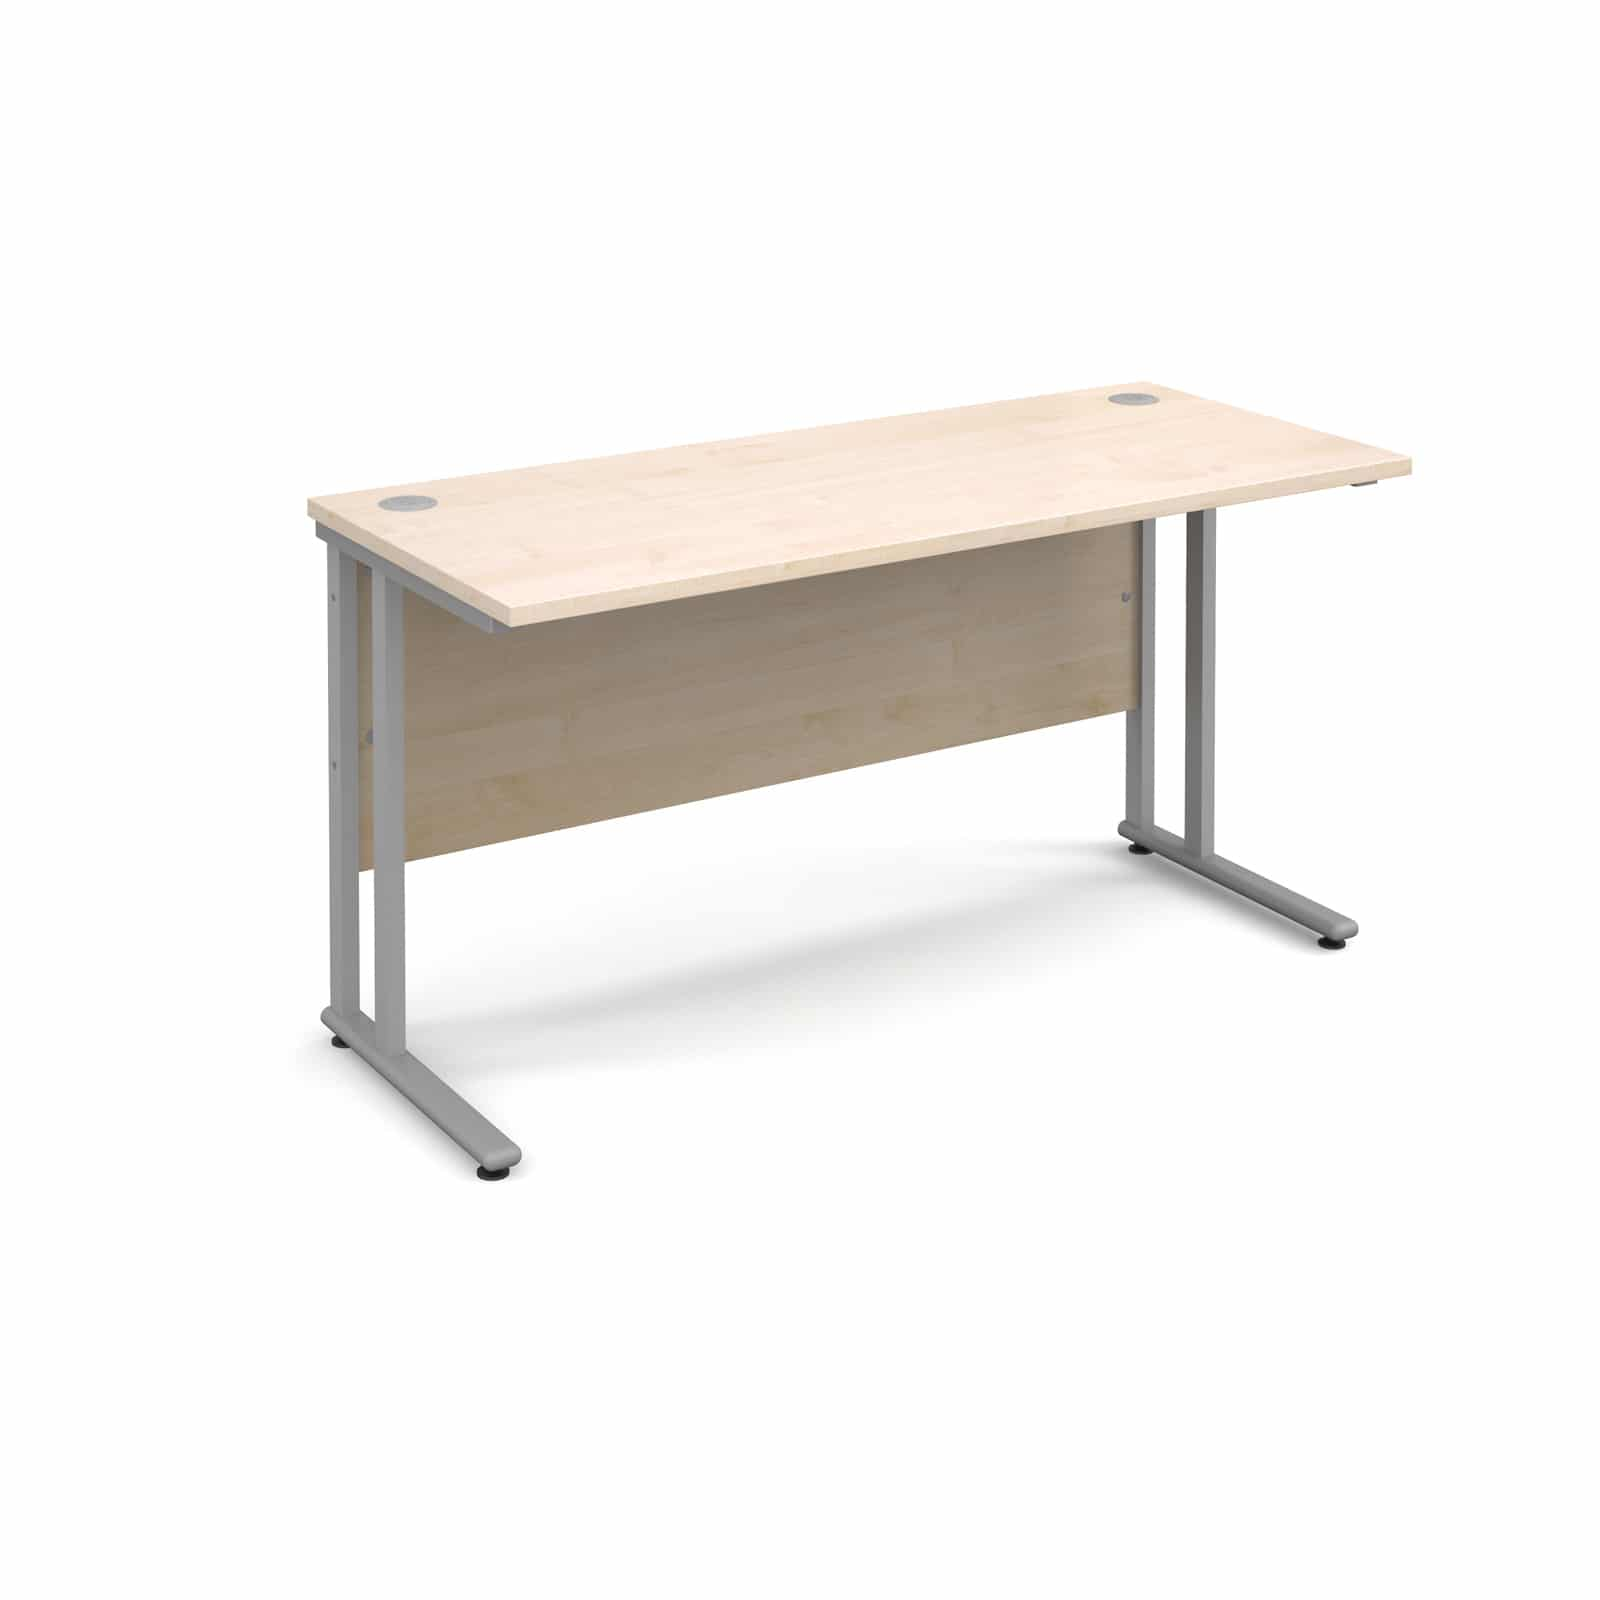 Bimi Slimline 1400mm X 600mm Rectangular Straight Desk In Maple